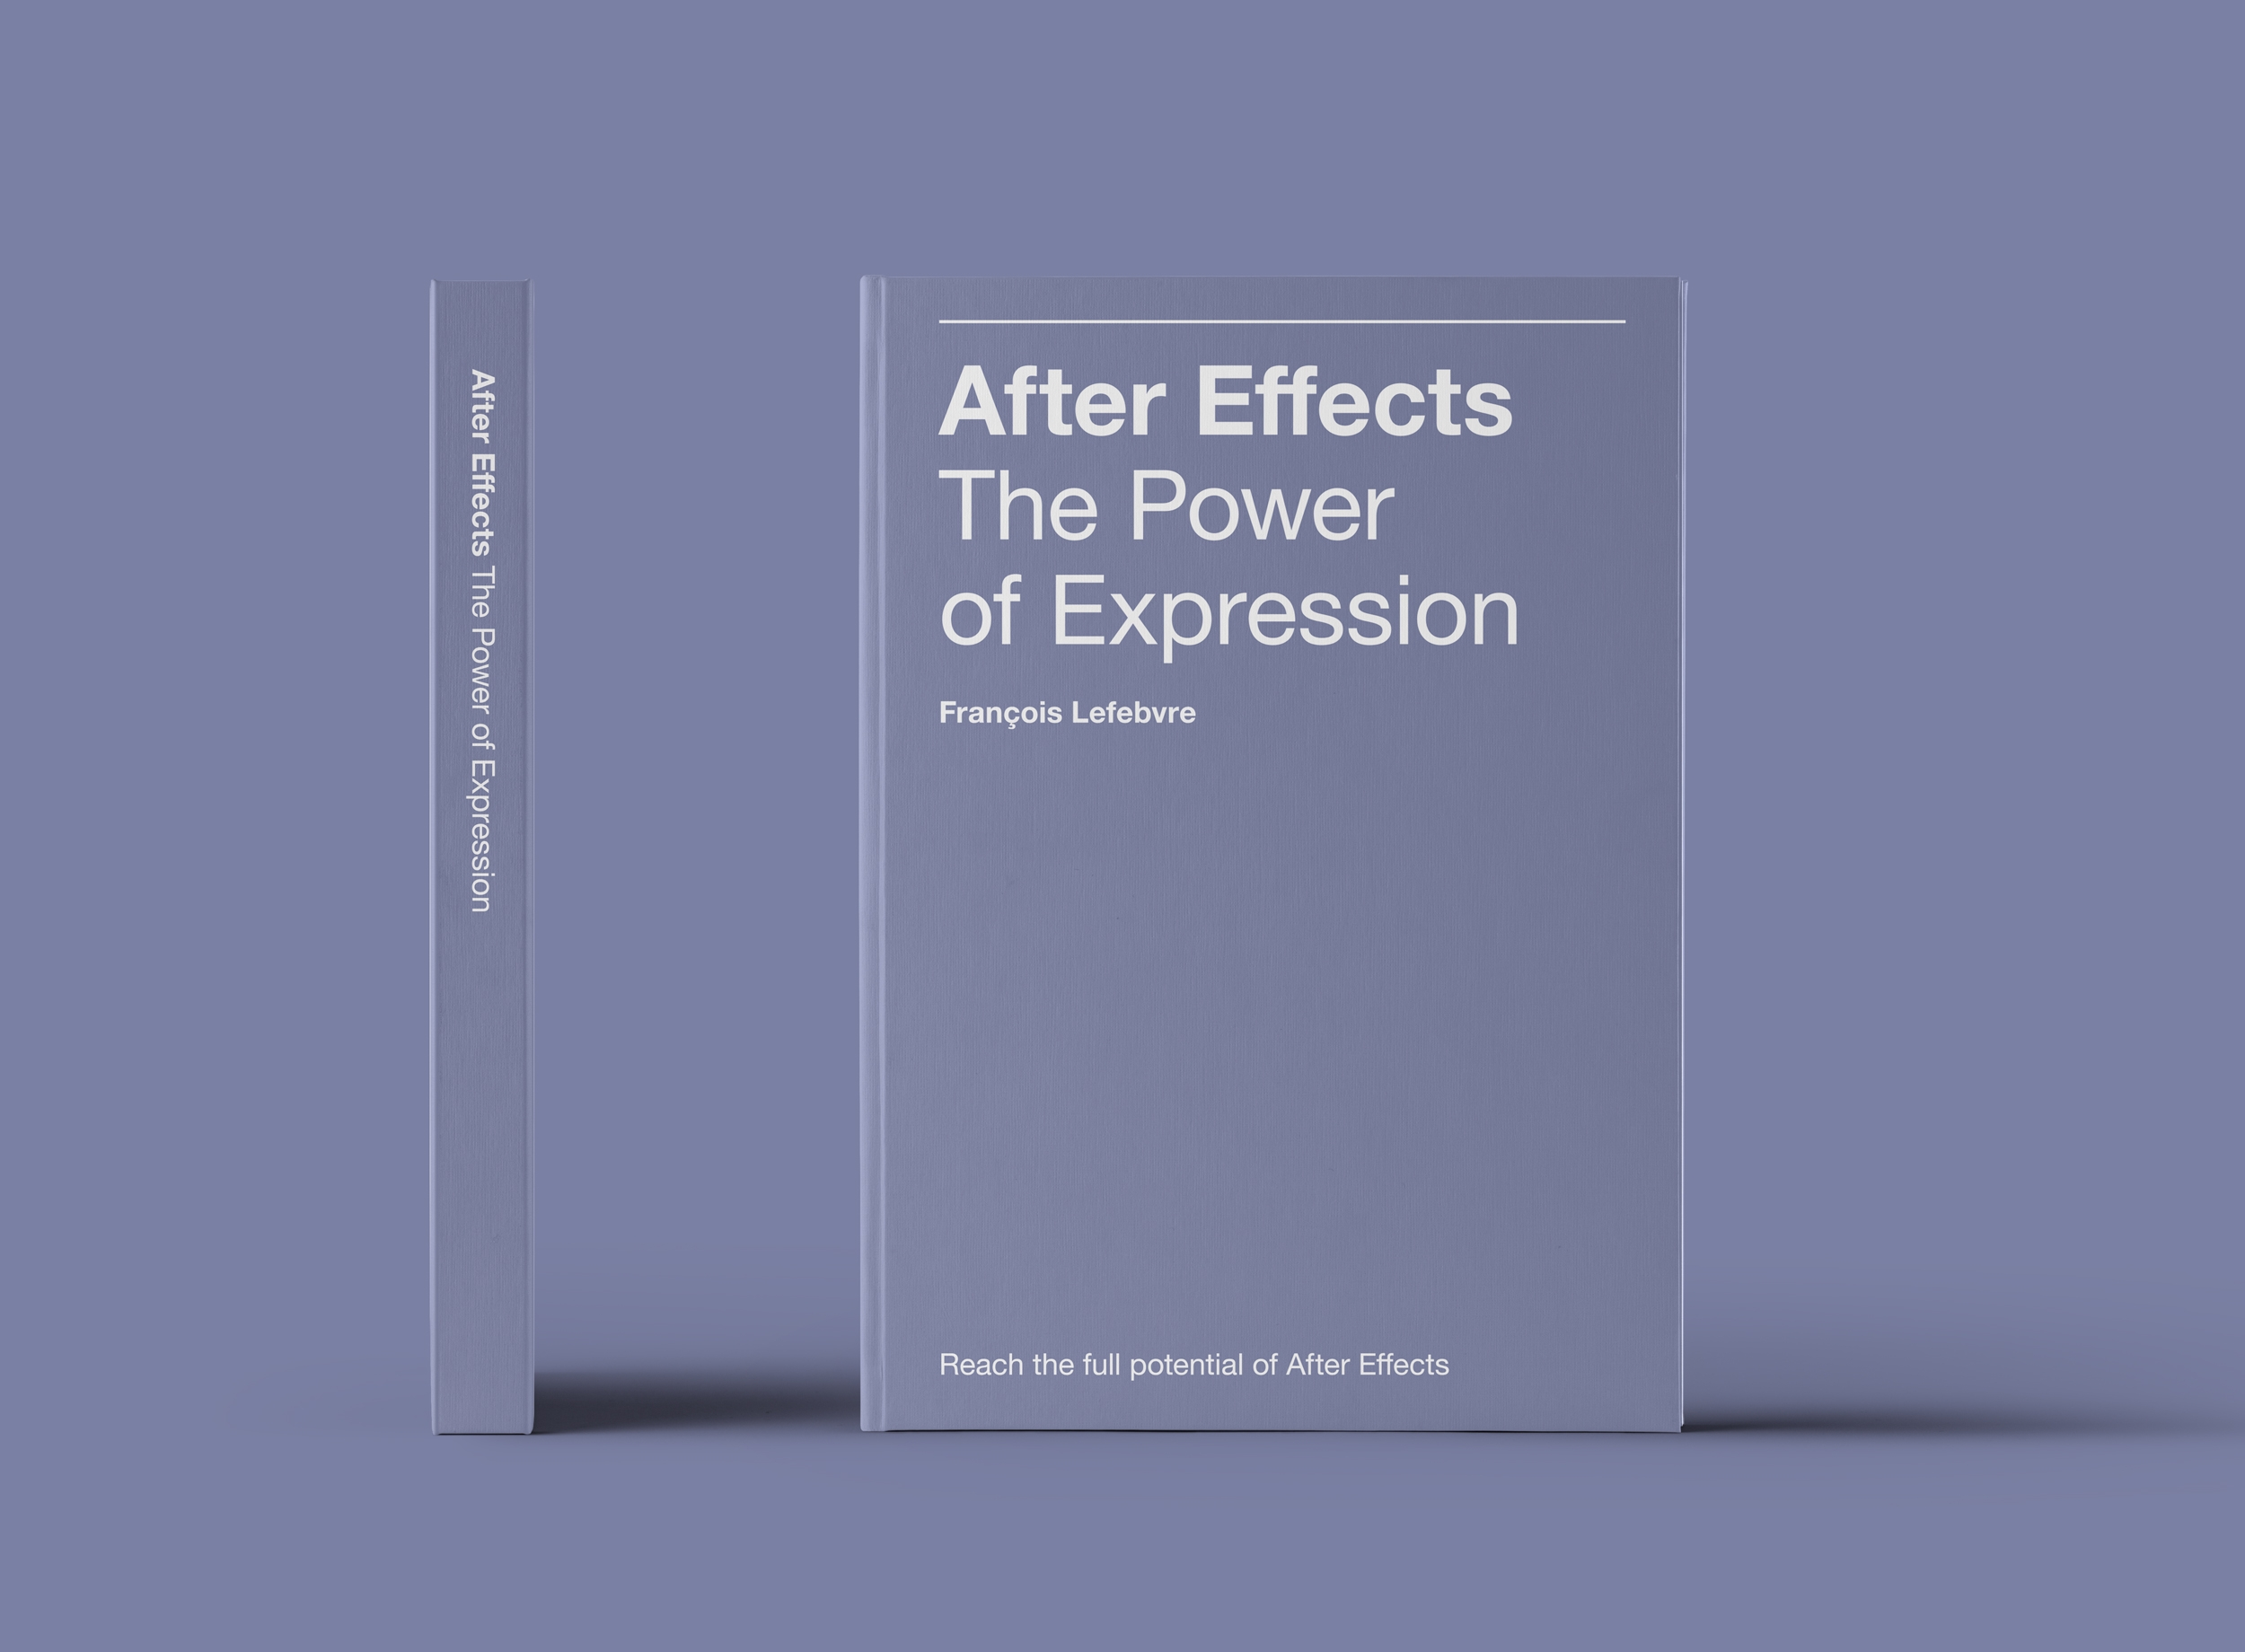 Power of expression the book